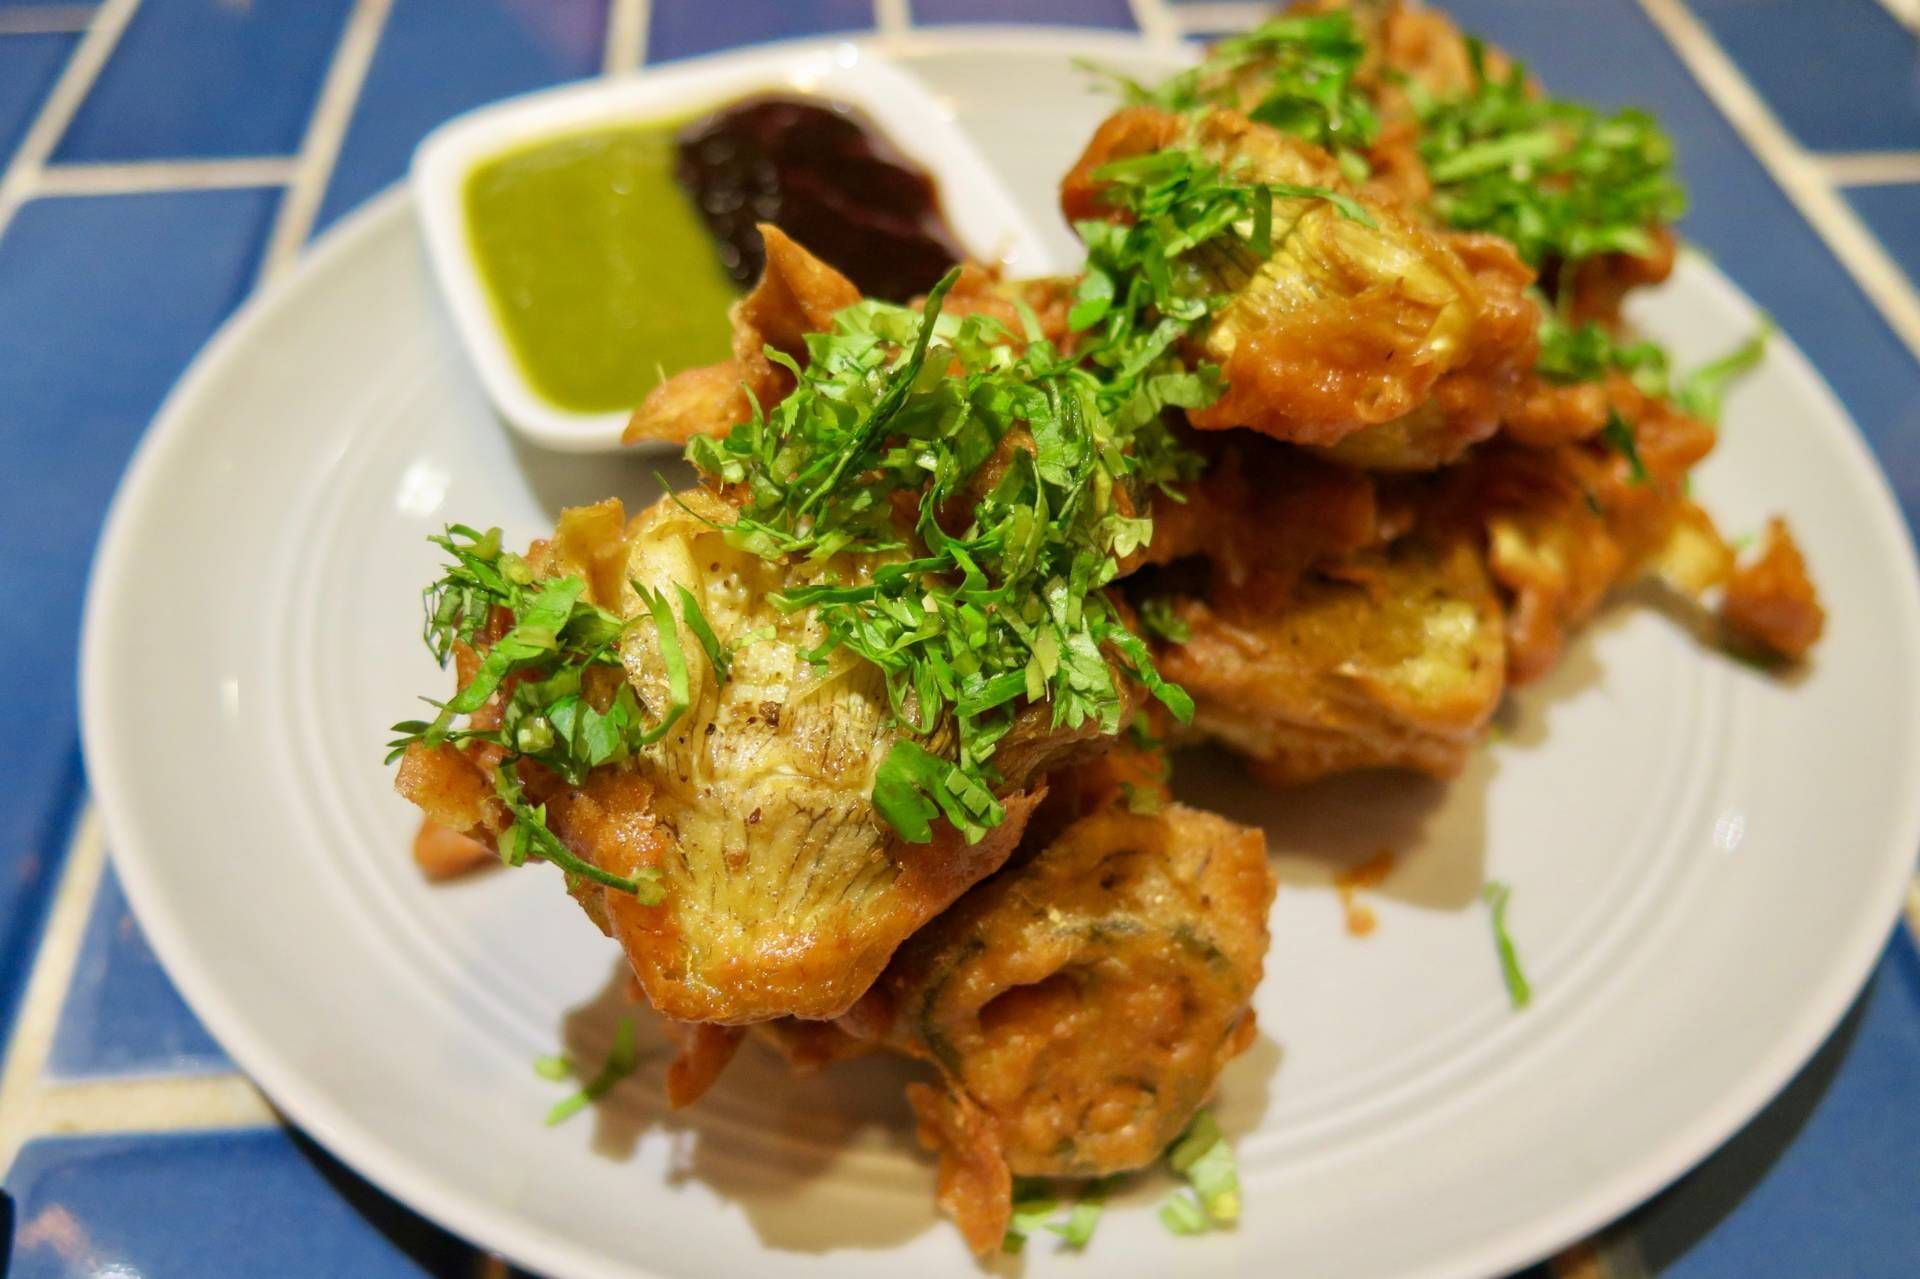 The artichoke pakoras are a great place to start. Soul food